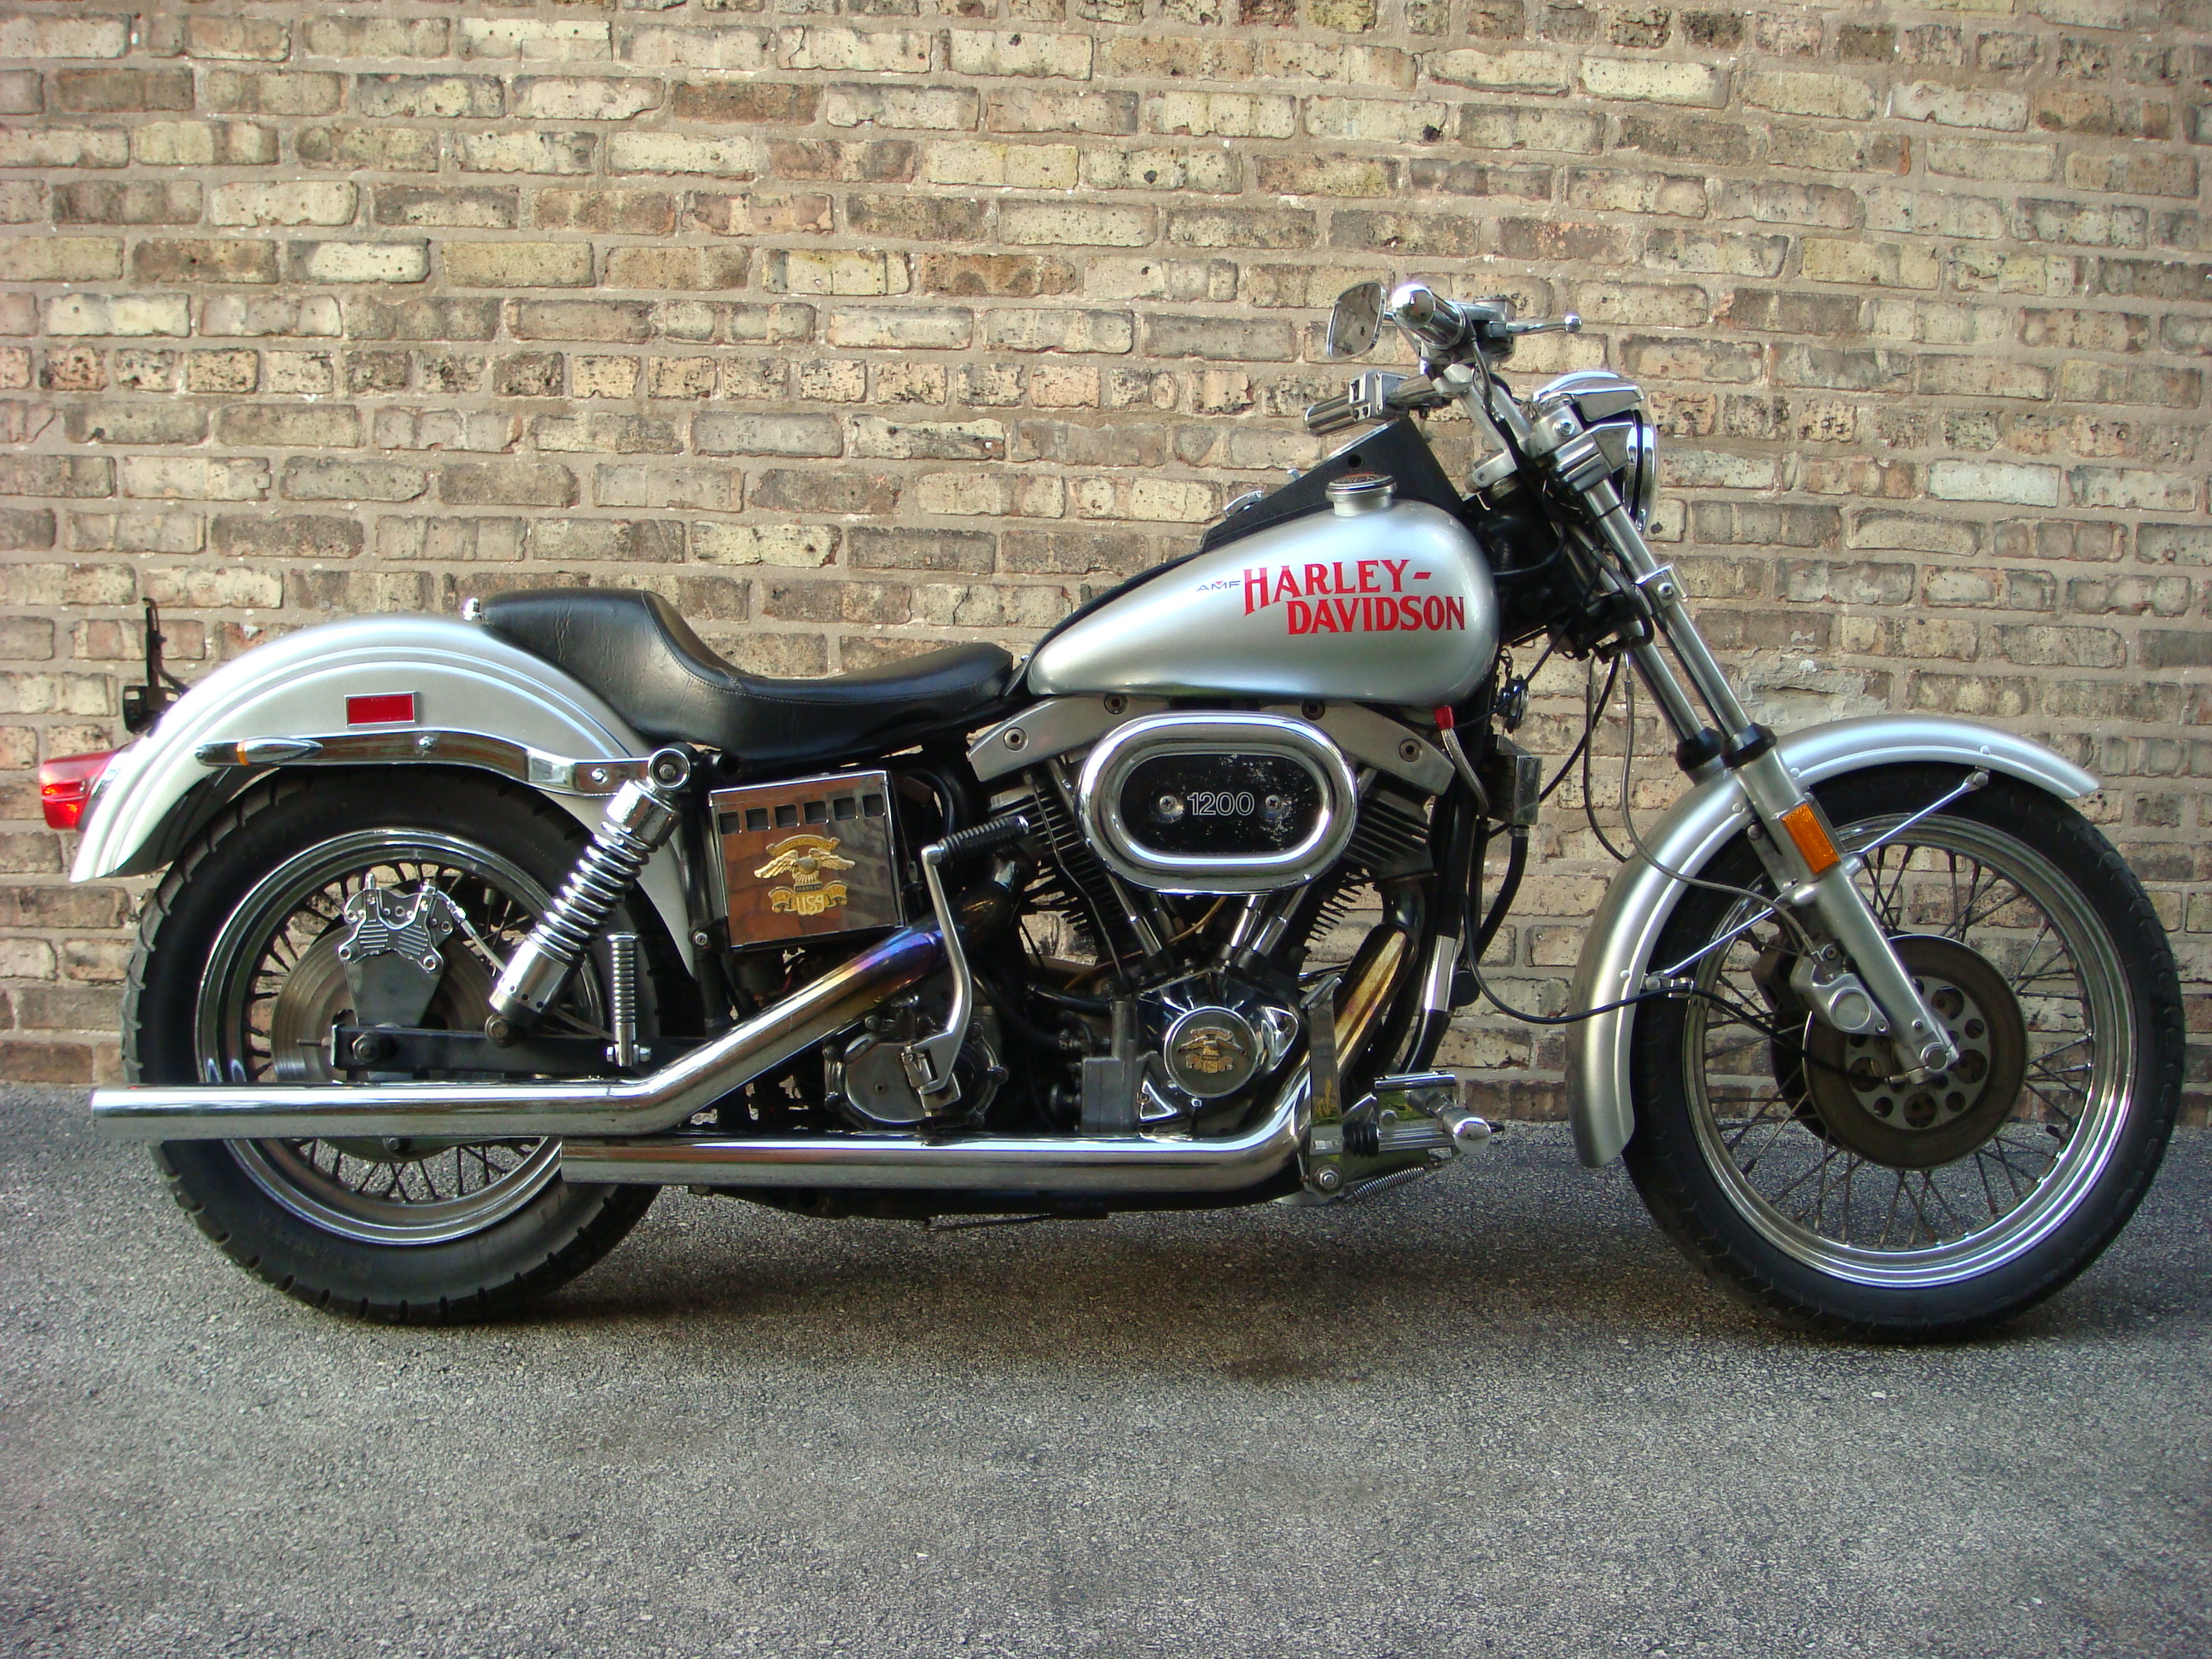 Harley Davidson Super Glide Value